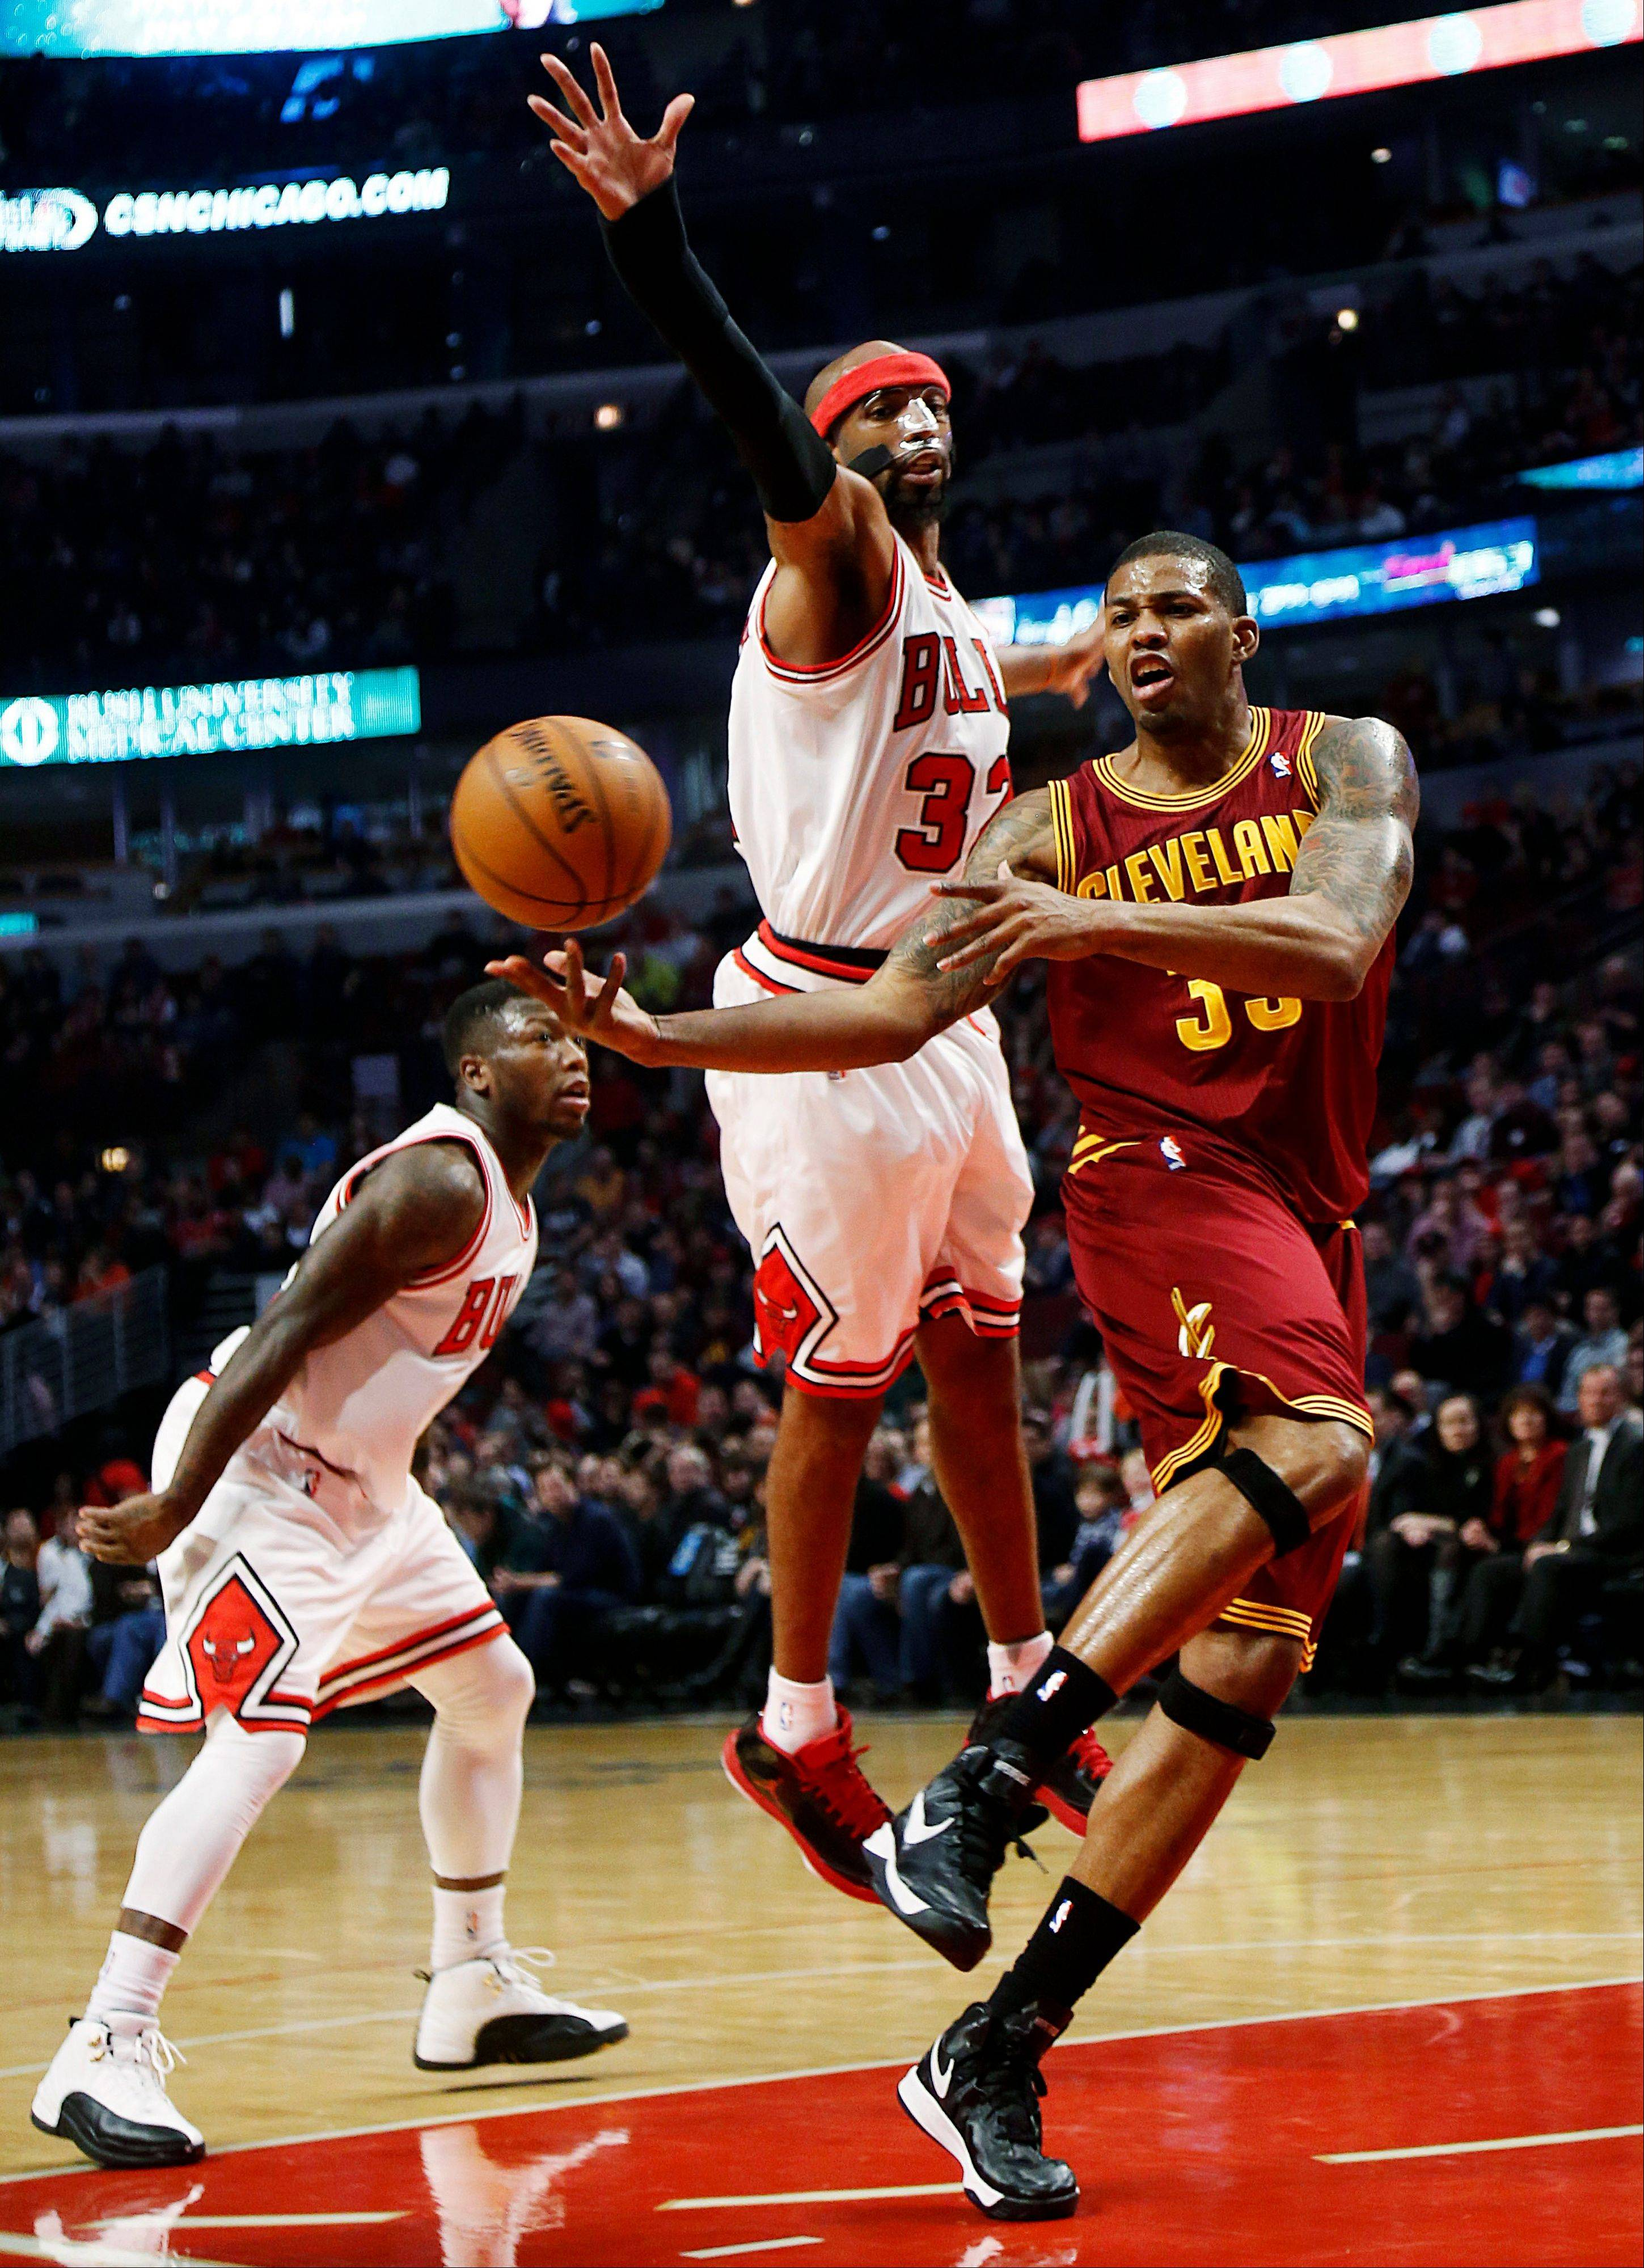 Cleveland Cavaliers' Alonzo Gee, right, makes a pass while being defended by Chicago Bulls' Richard Hamilton during the second quarter of their NBA basketball game, Tuesday, Feb. 26, 2013, in Chicago.